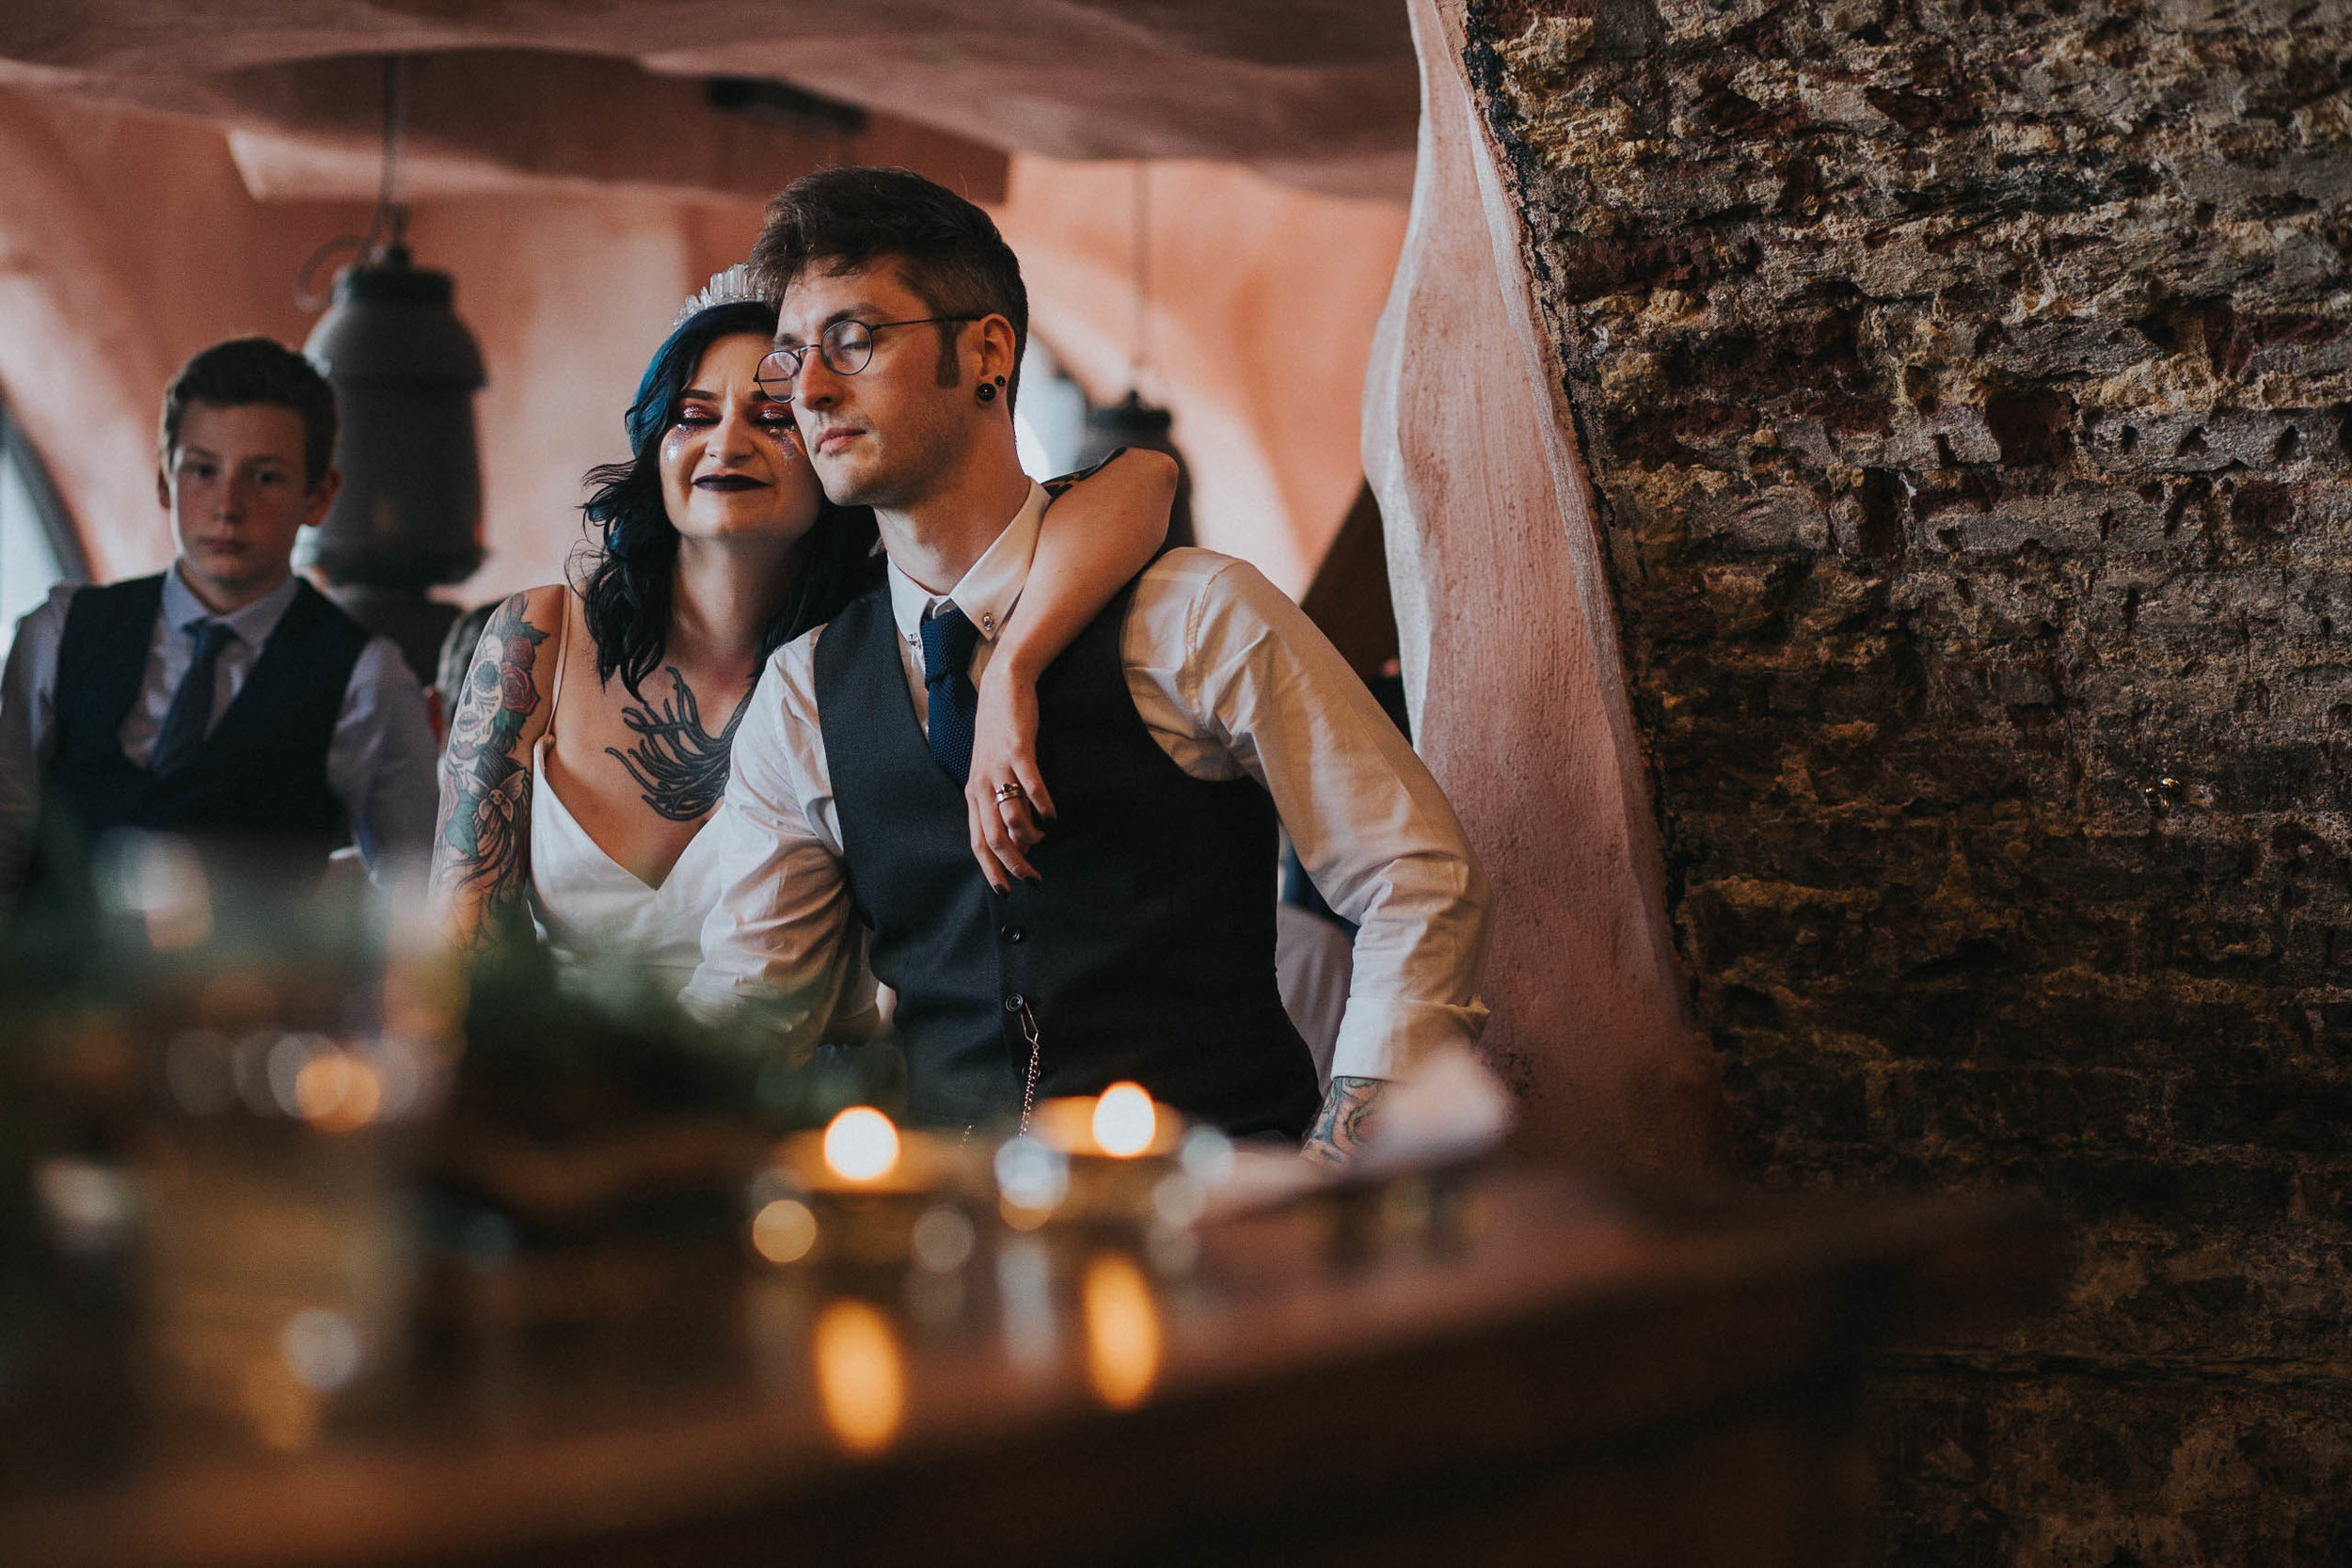 Wedding photographer in East Sussex